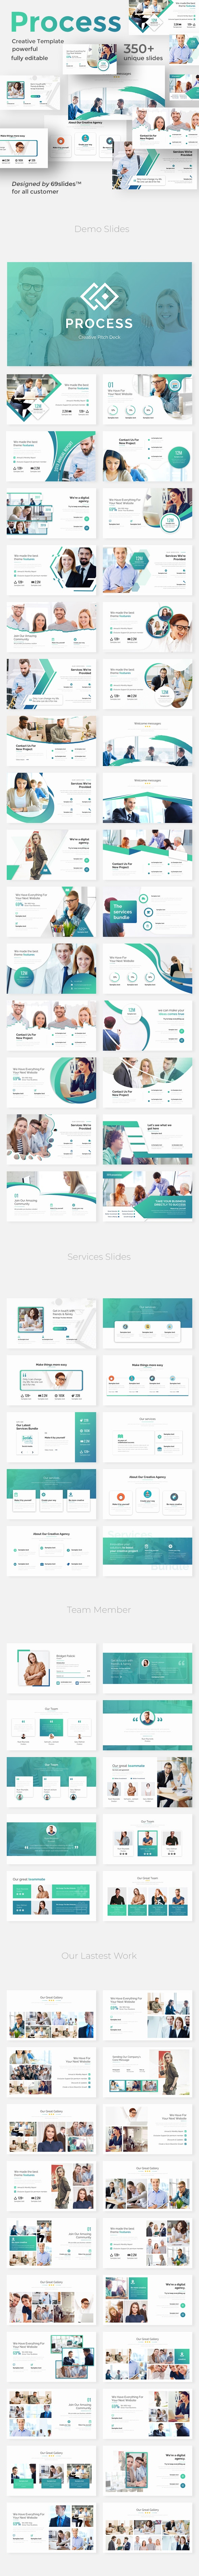 Creative Process Pitch Deck Powerpoint Template - Business PowerPoint Templates